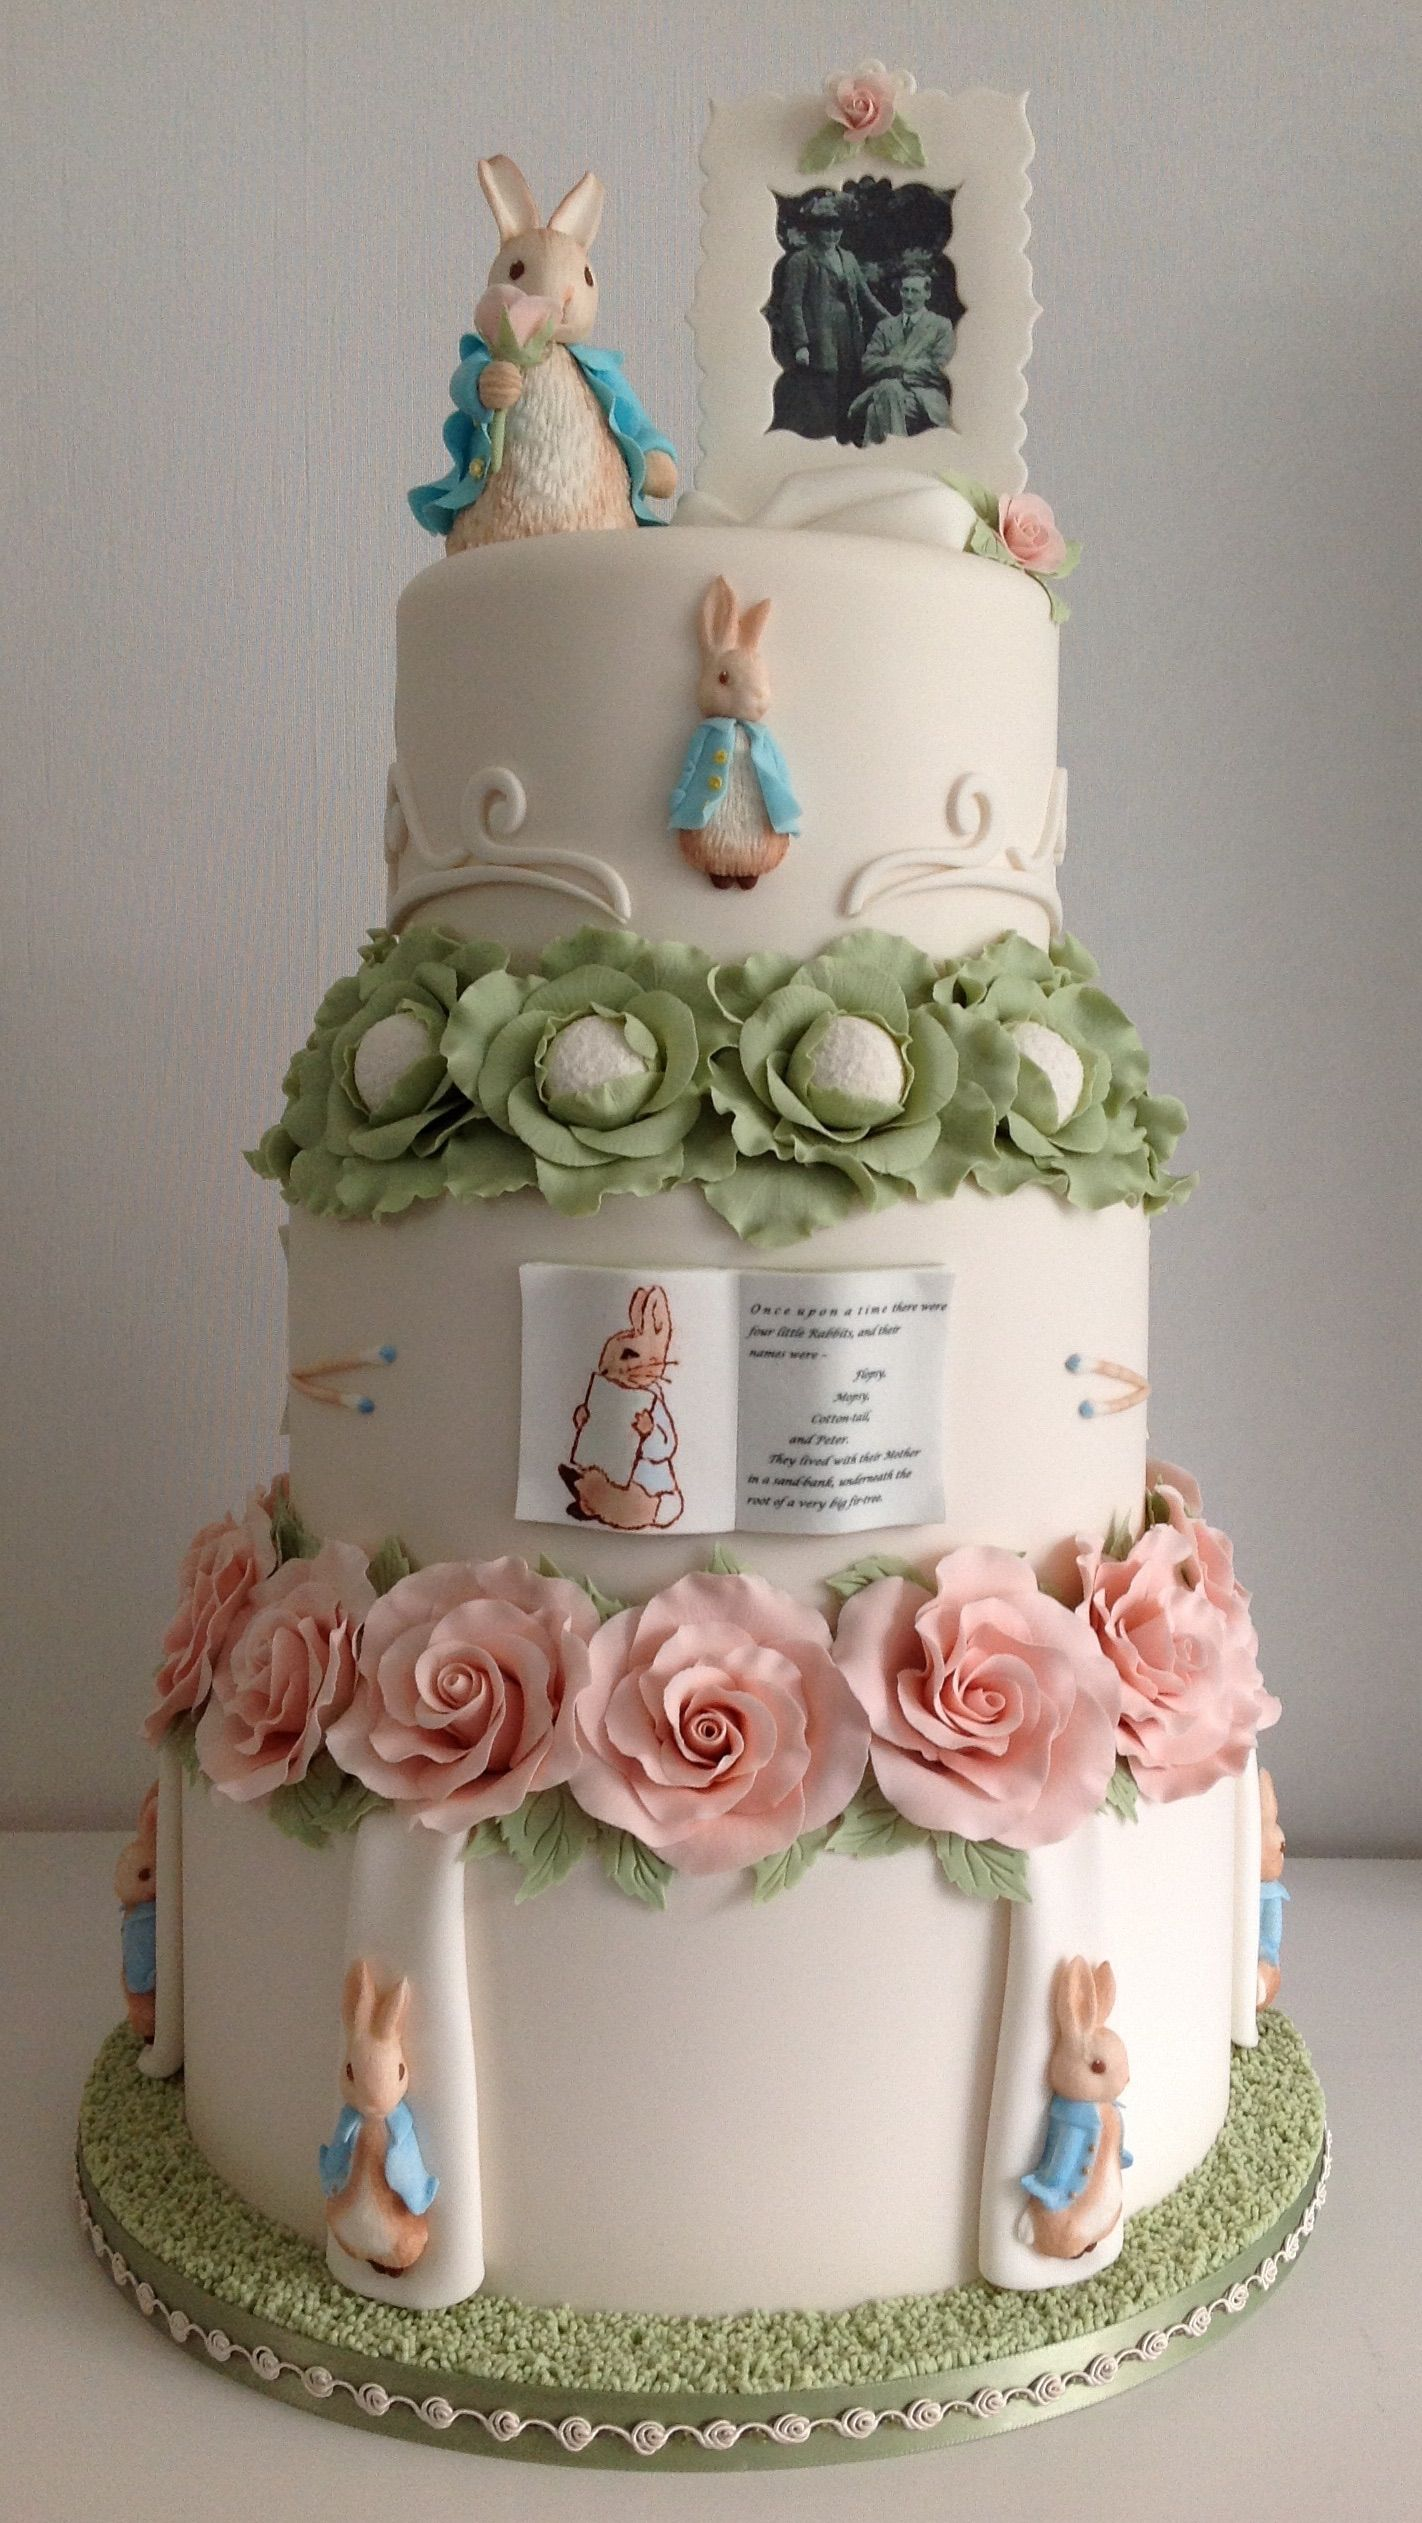 Peter Rabbit Wedding Cake Not Sure About This As A Wedding Cake